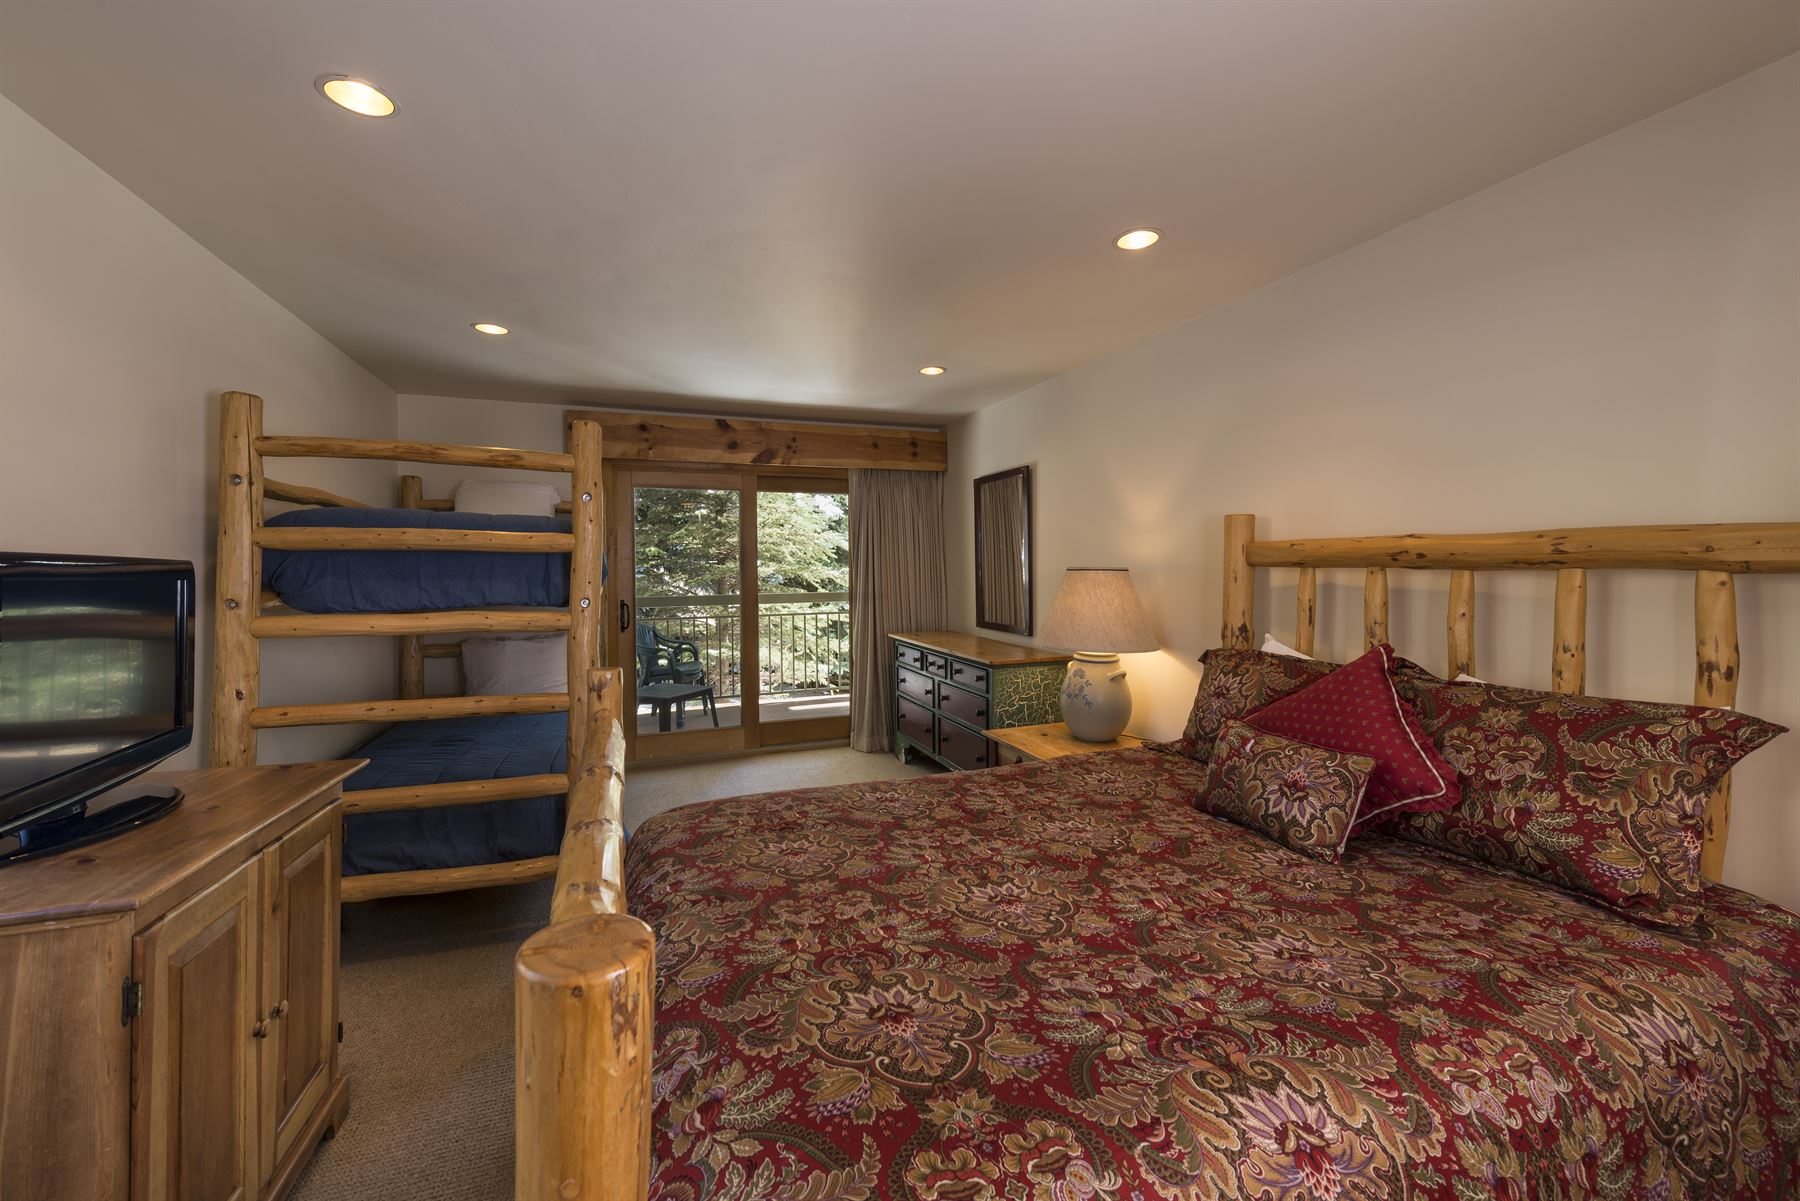 4BGold_Bedroom with Queen bed and Twin bunk bed